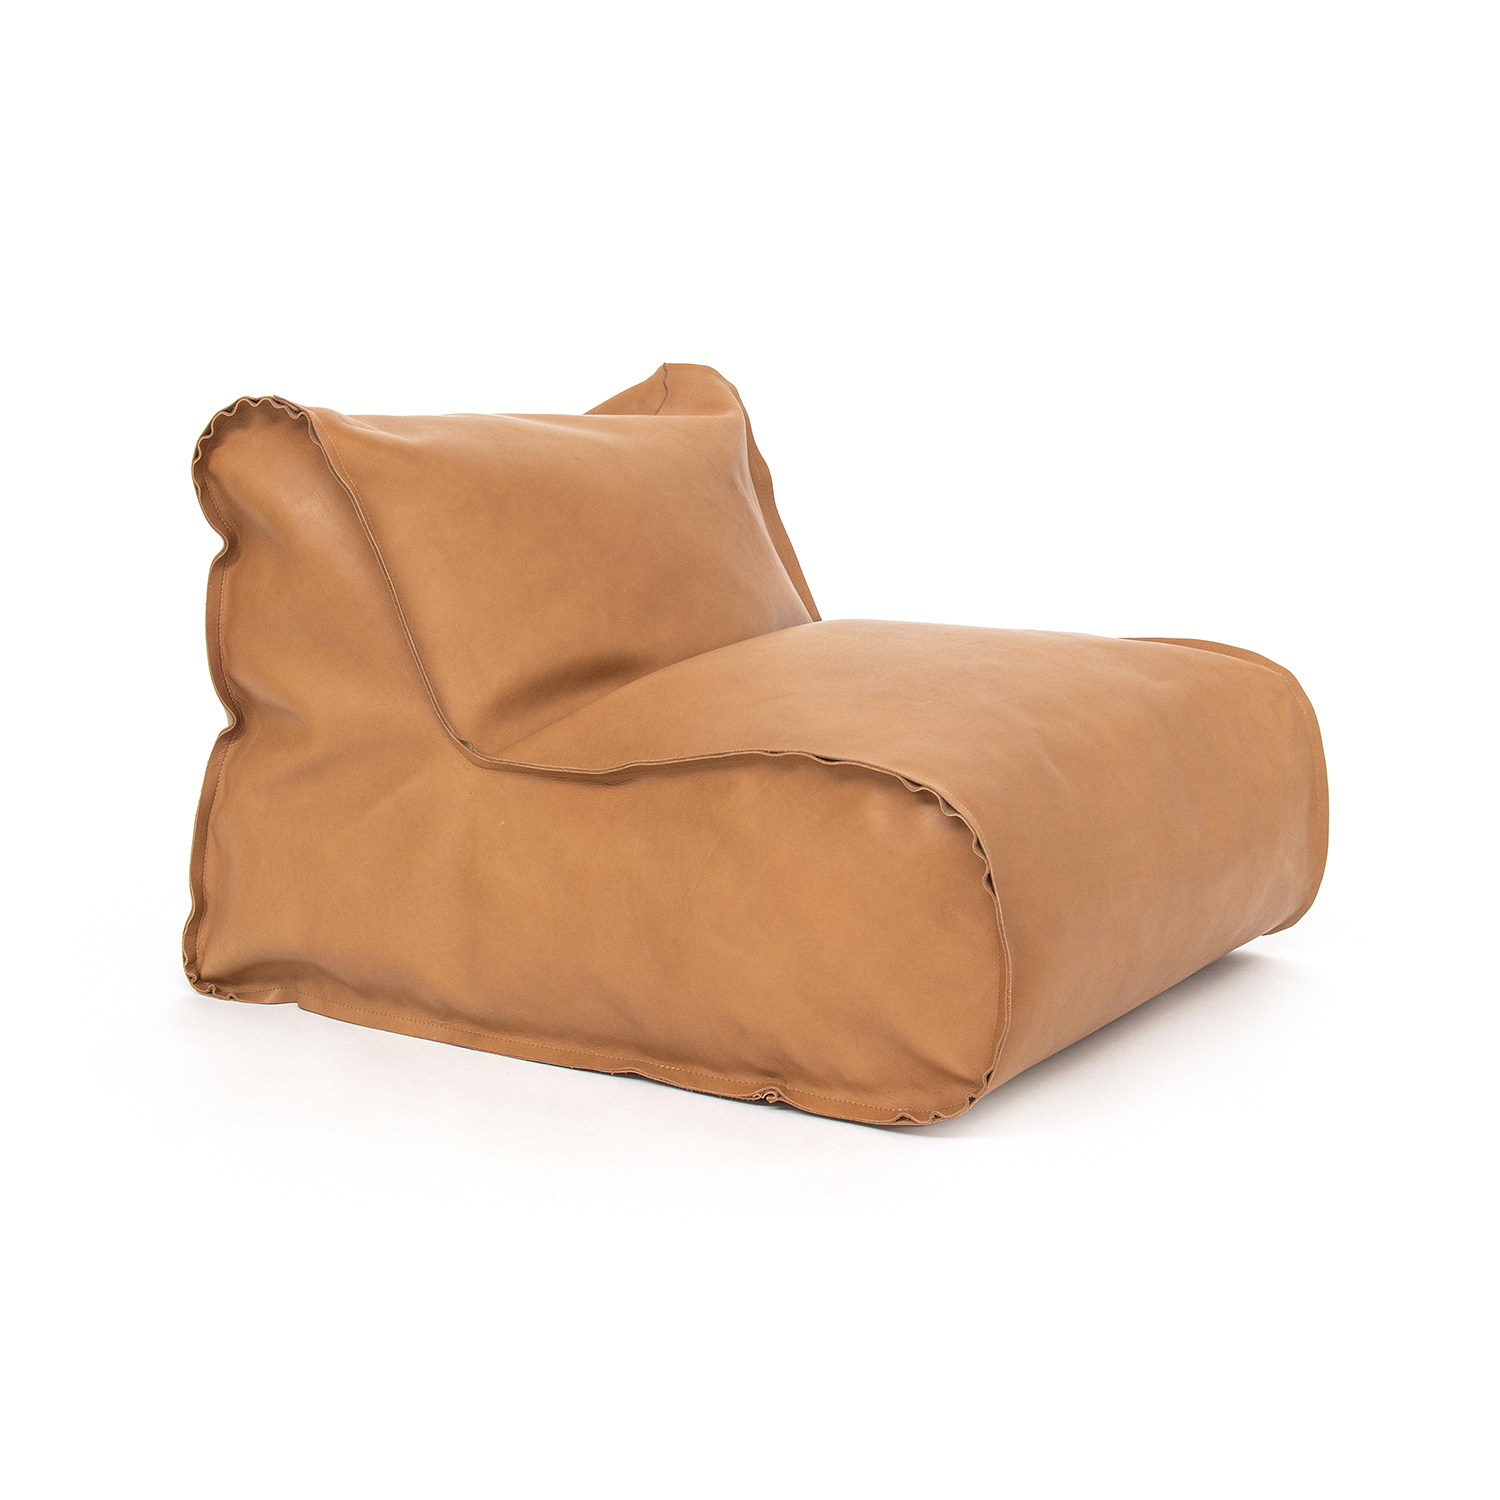 02_Bag_chair_leather_perspective01_THUMBNAIL-1